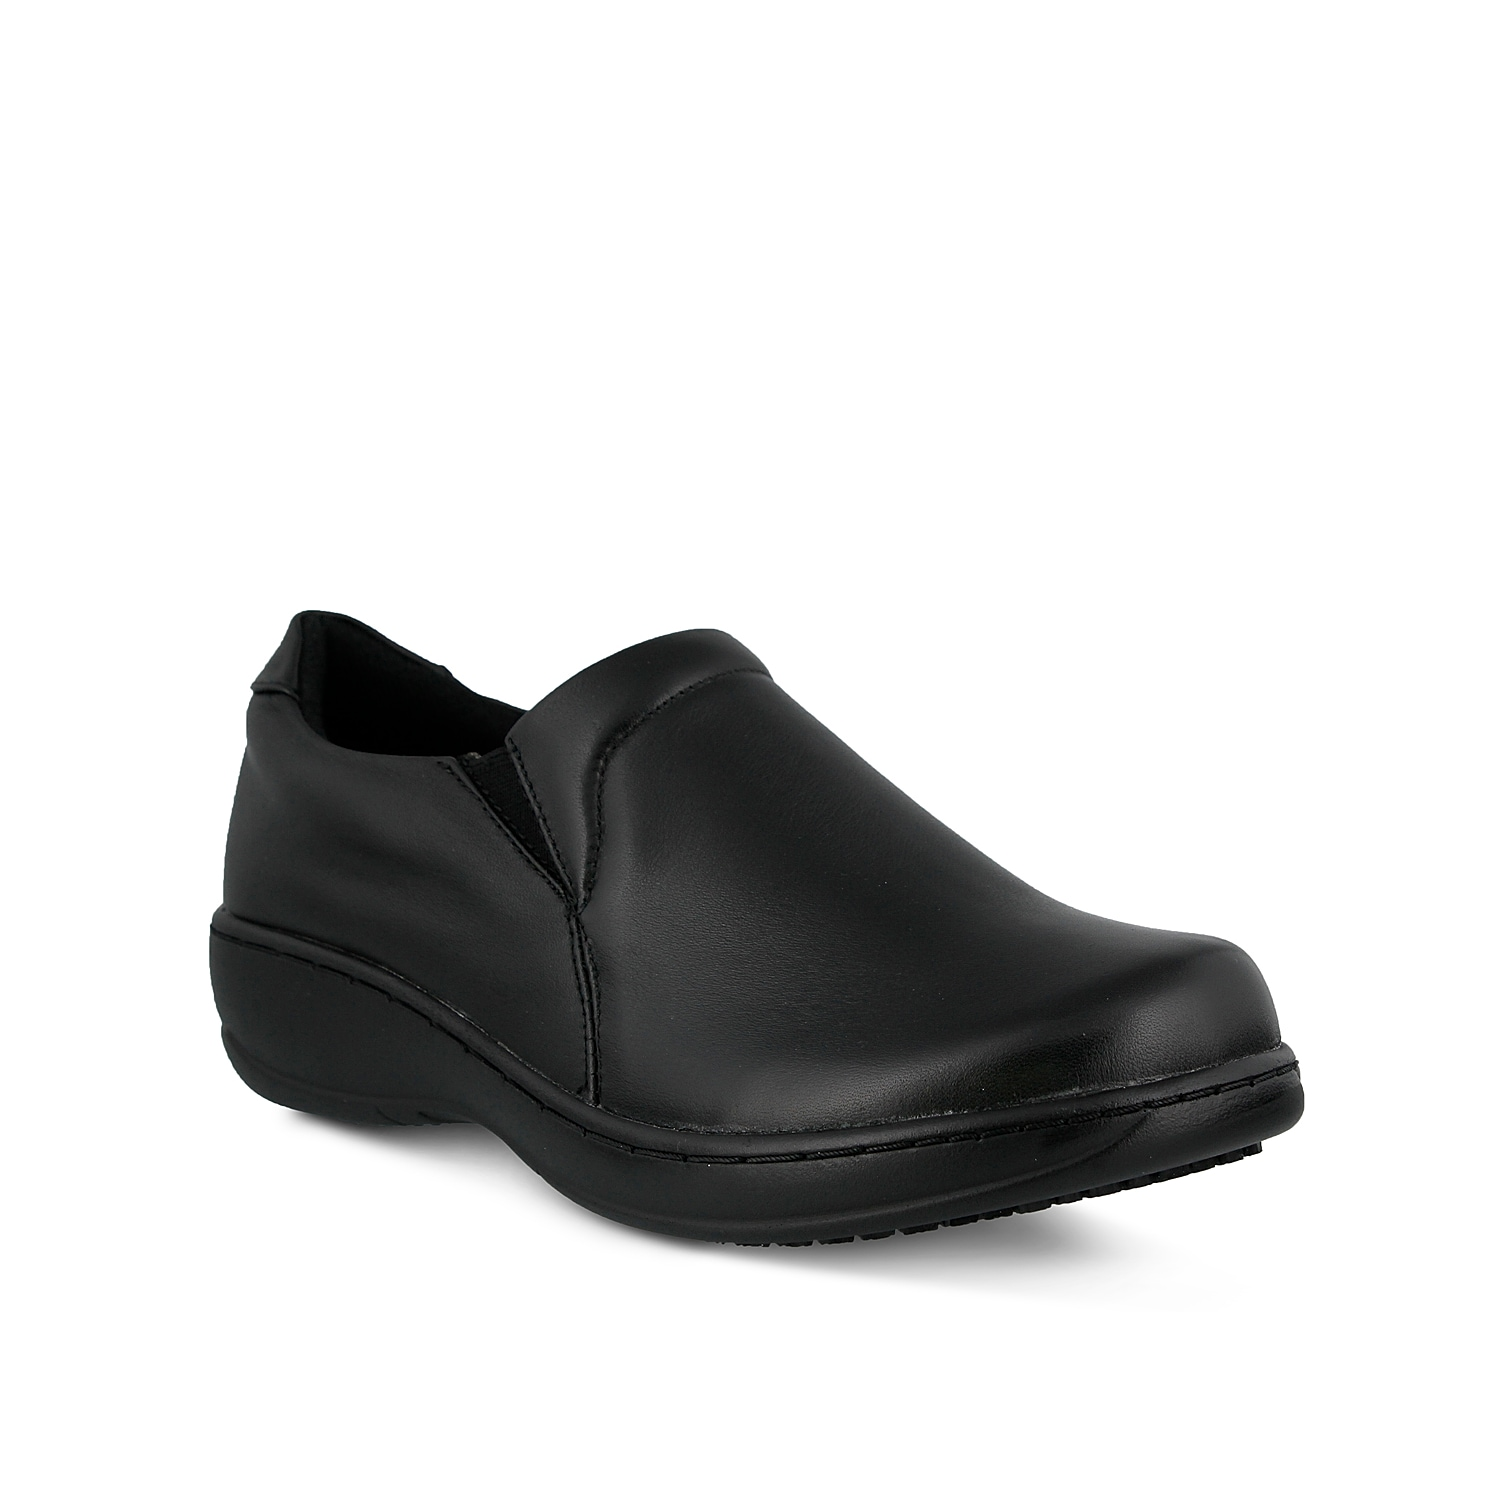 Work can\\\'t stop you! Slip on the Woolin clog from Spring Step for a truly comfortable all-day shoe.